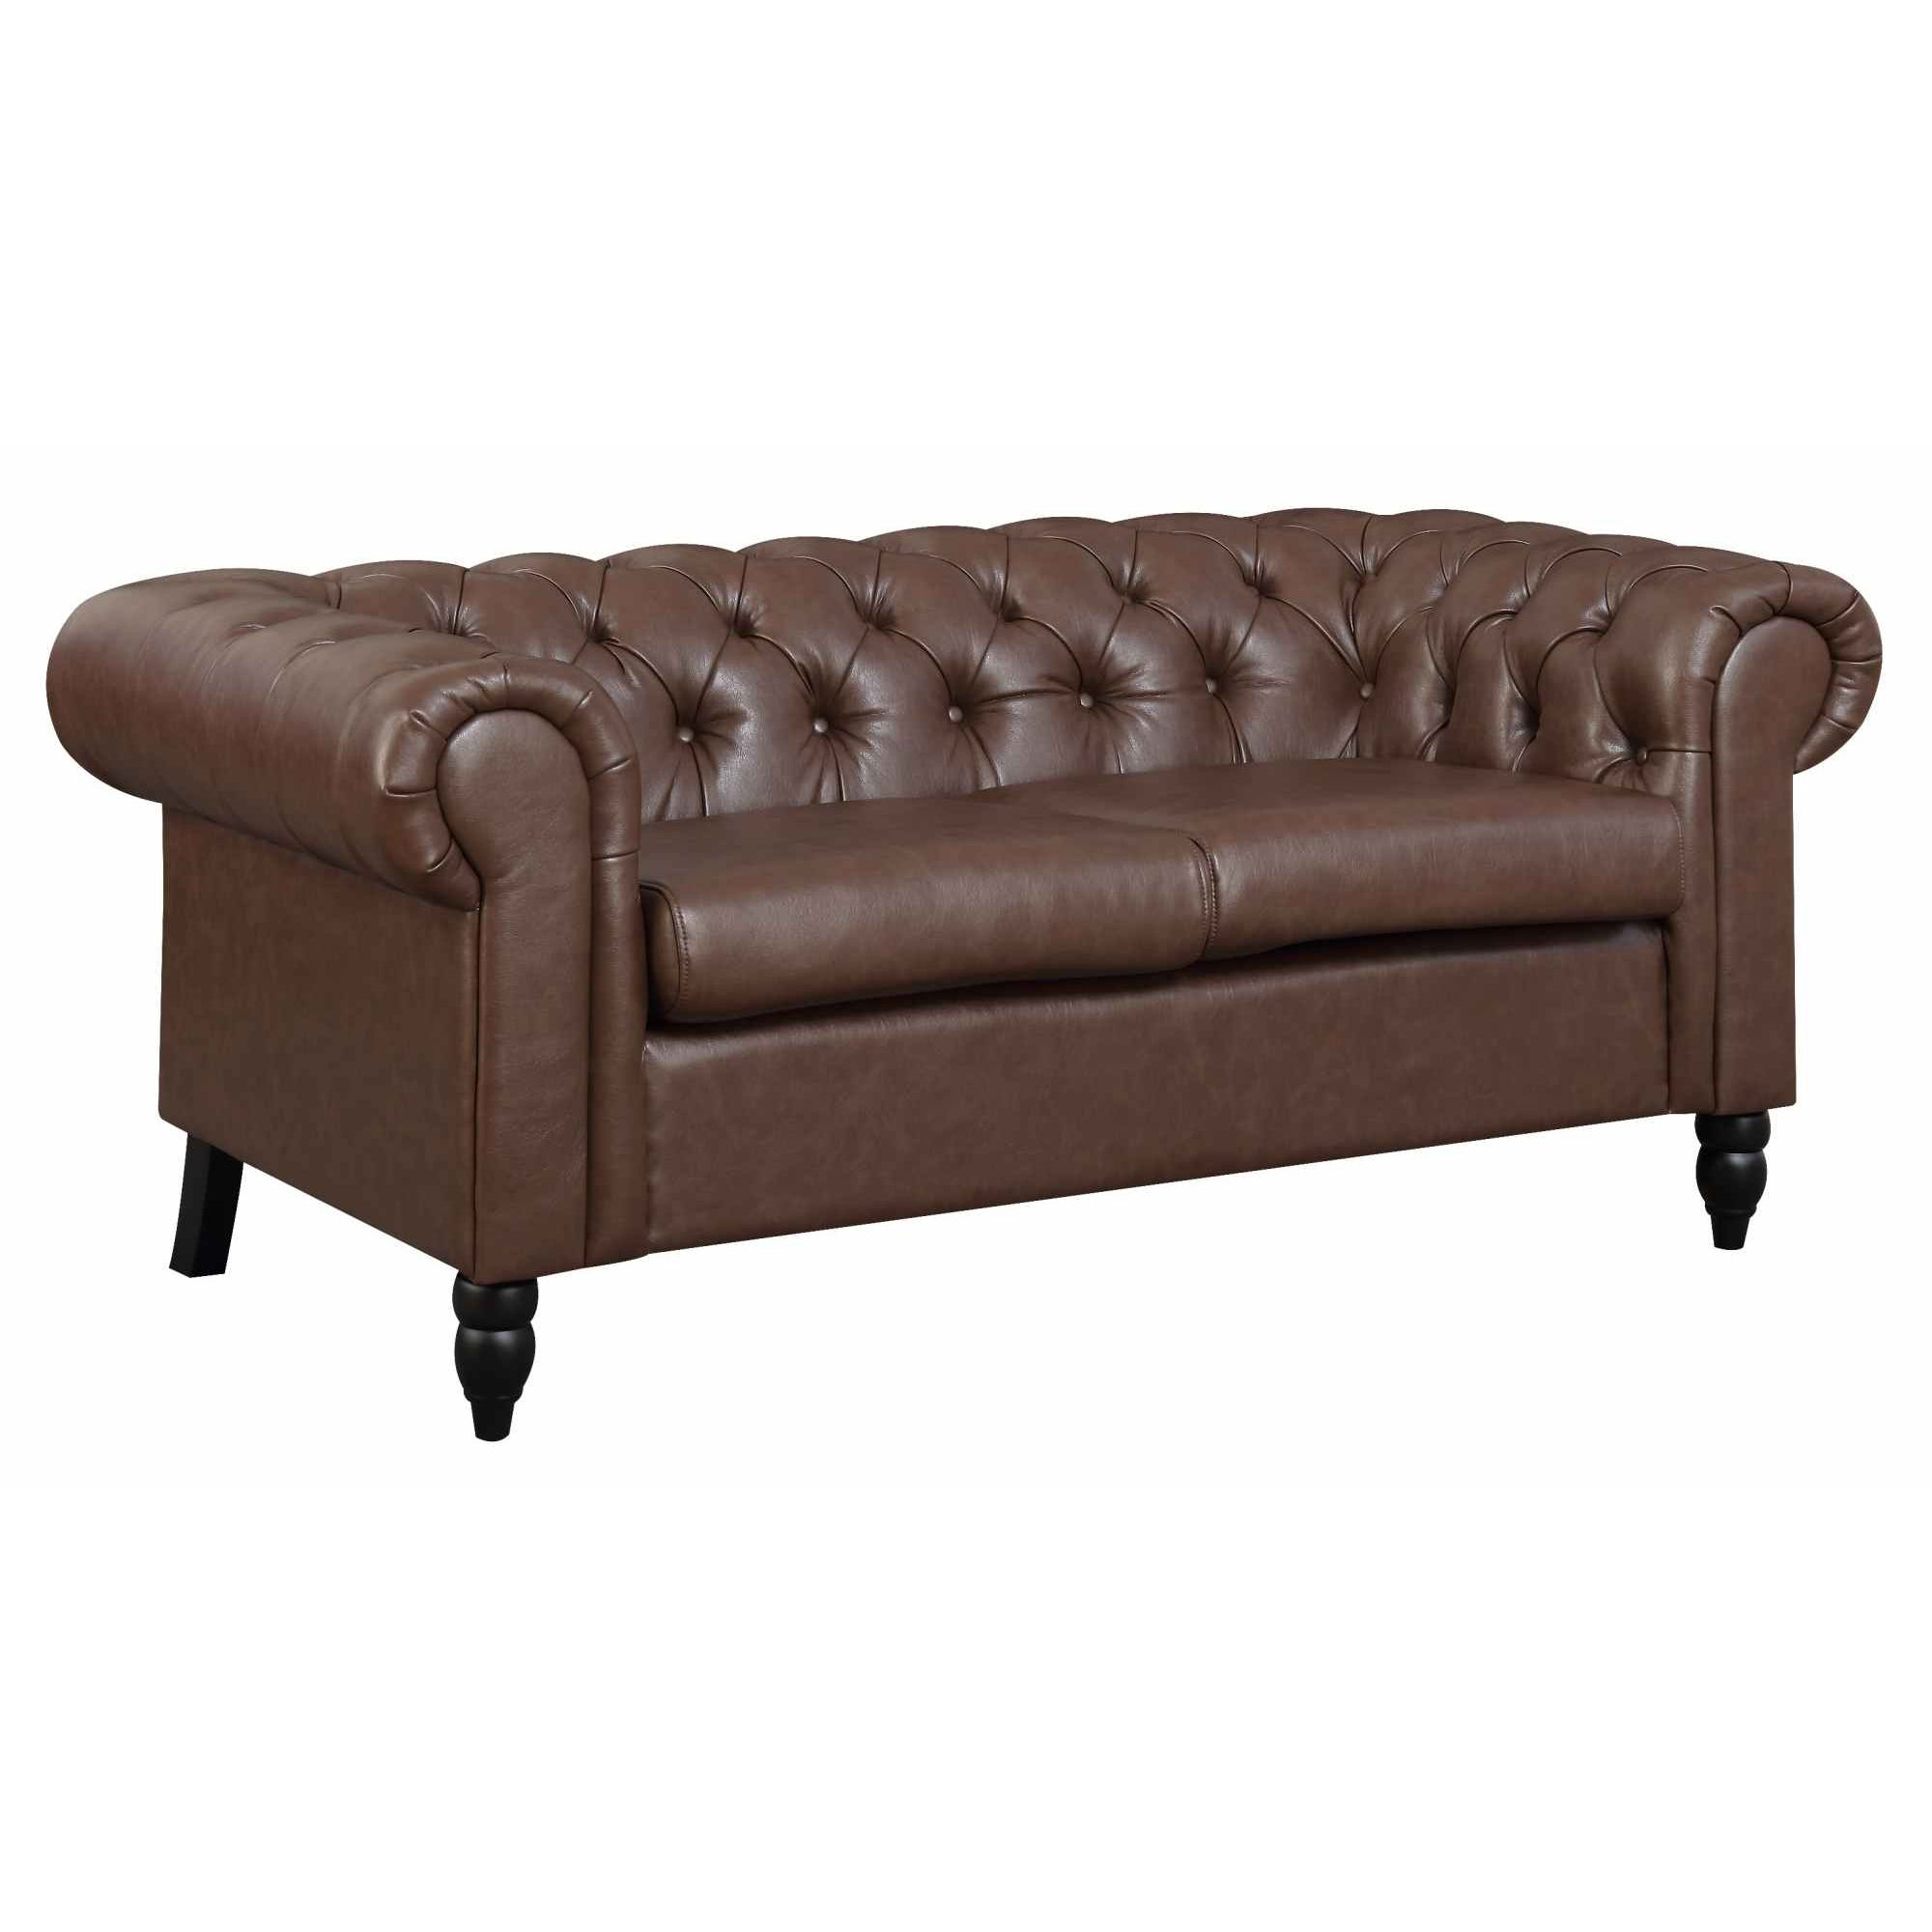 Chesterfield 2 places maison design for Canape chesterfield